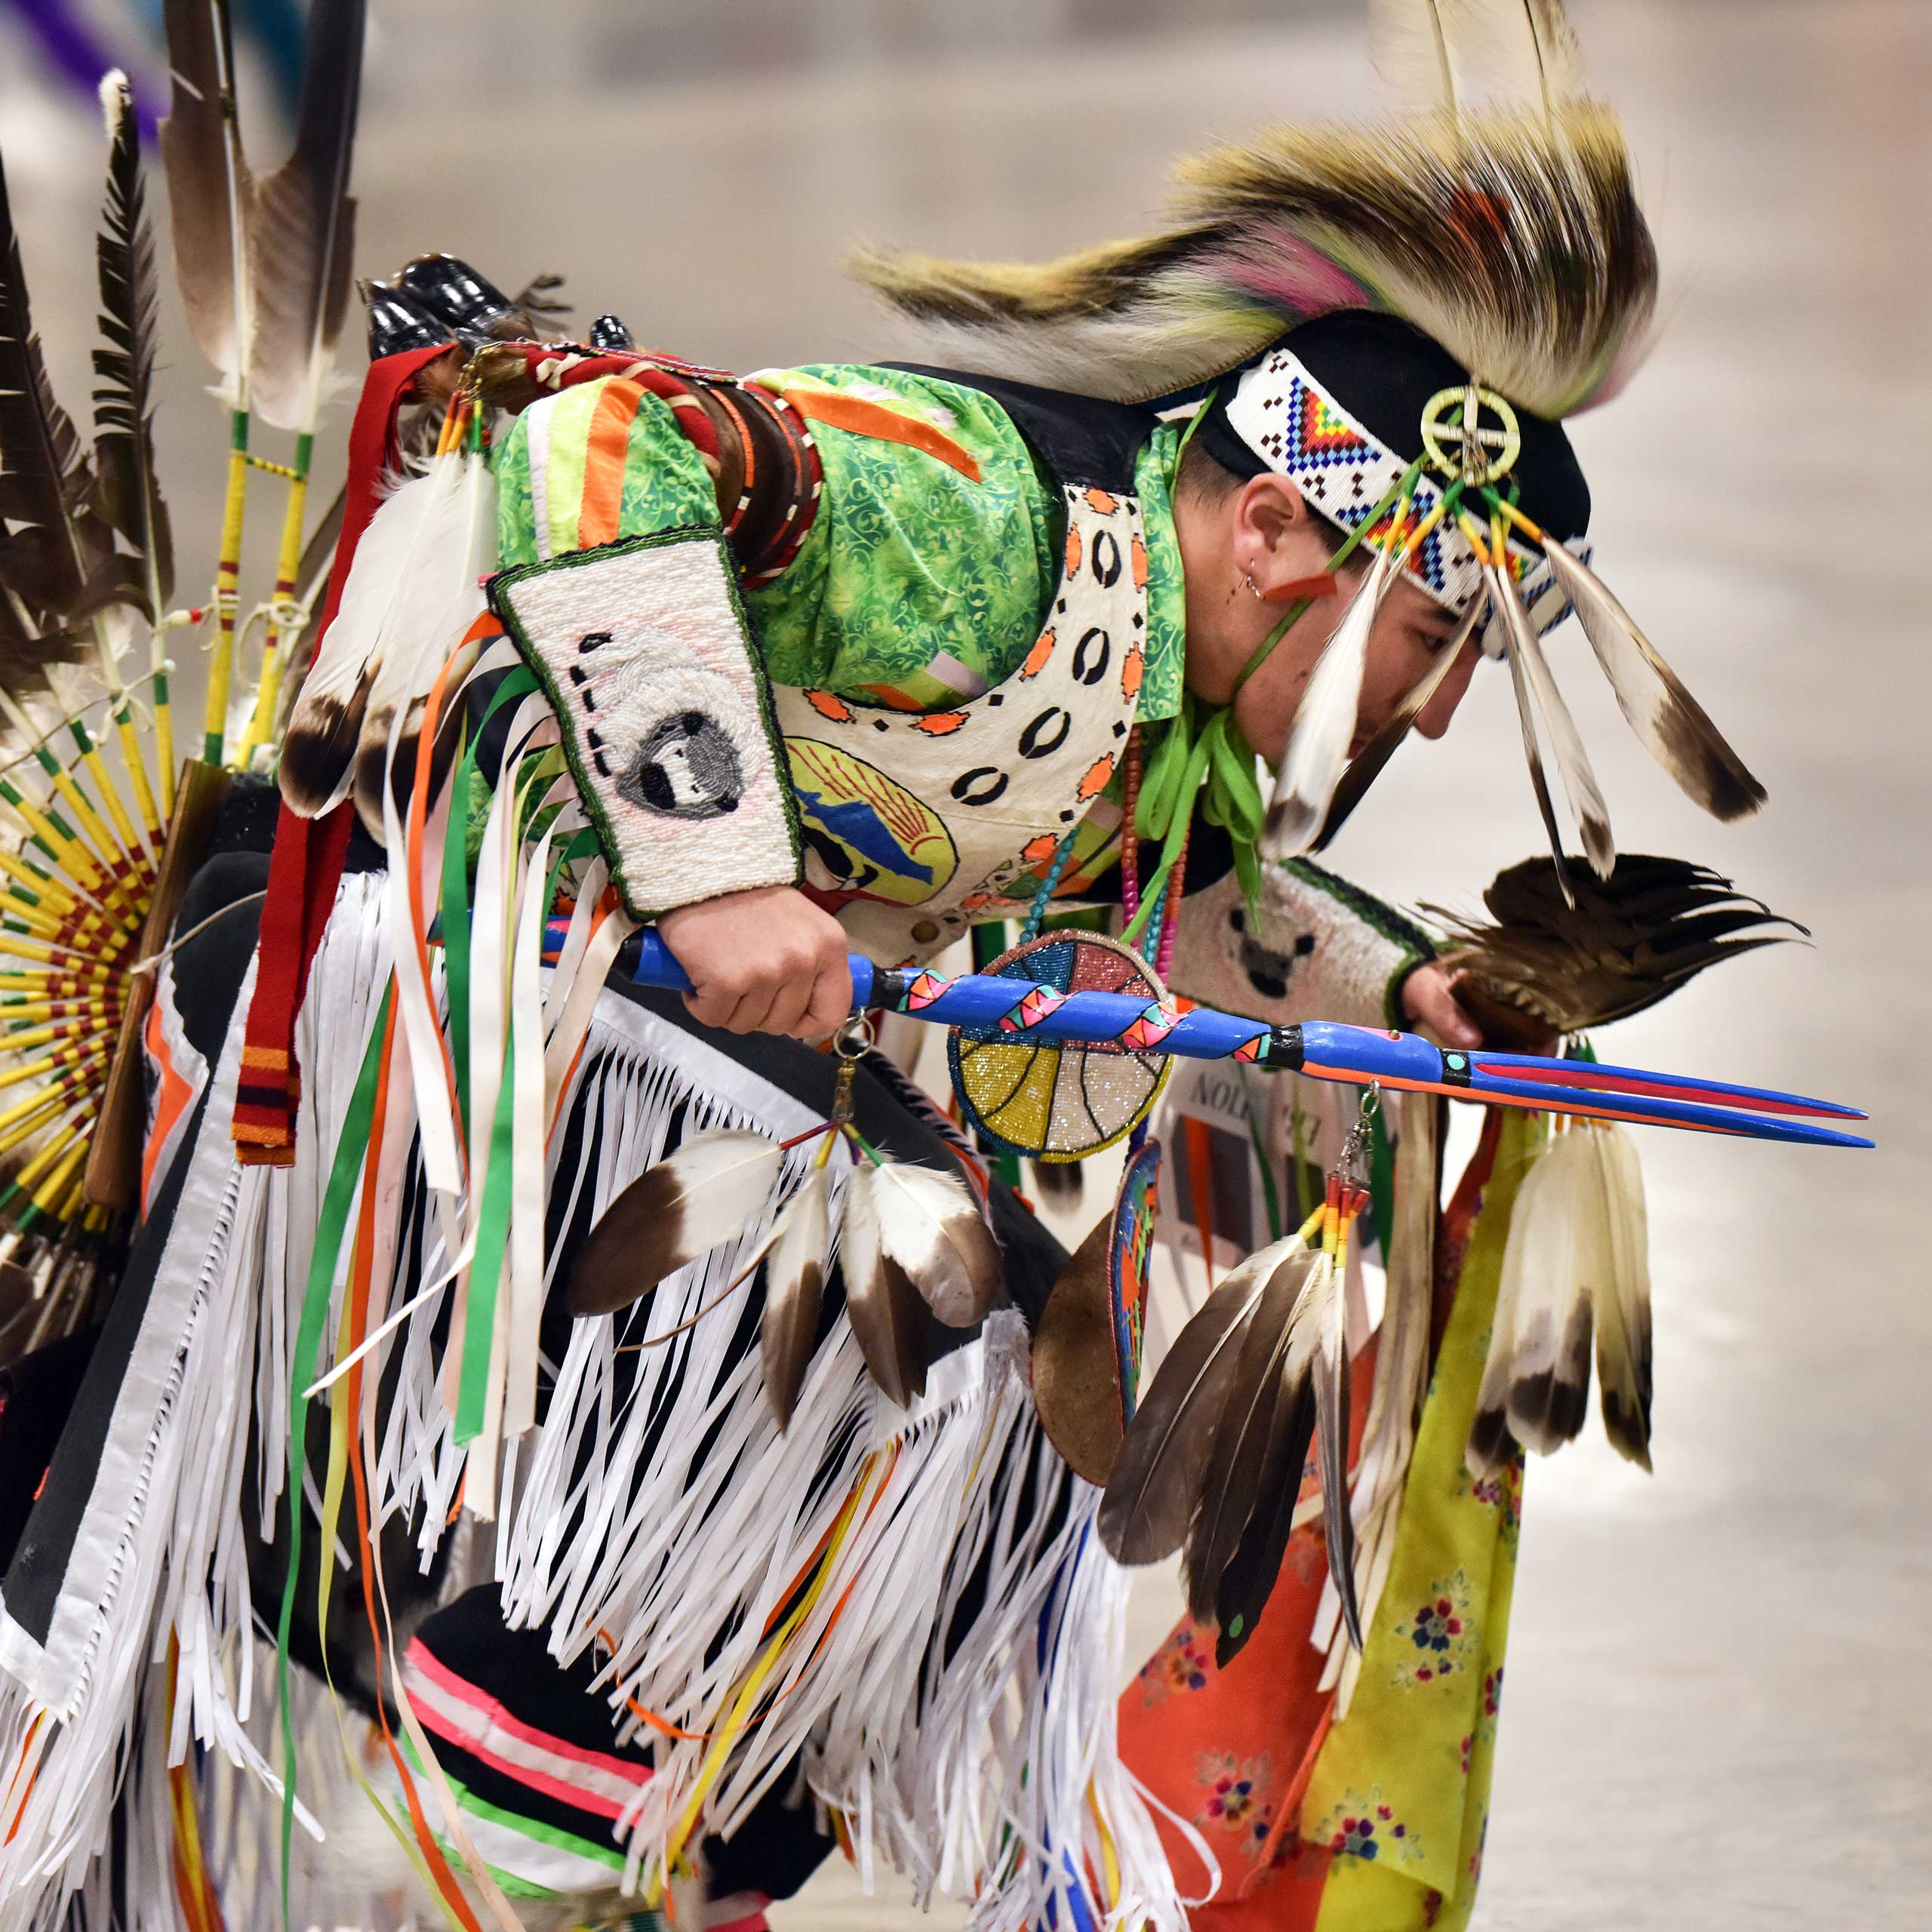 The Gila River Indian Community hosts the Mul-Chu-Tha Fair in Sacaton to celebrate and honor their culture with activities, rodeo, parades, Pow Wow, and more.